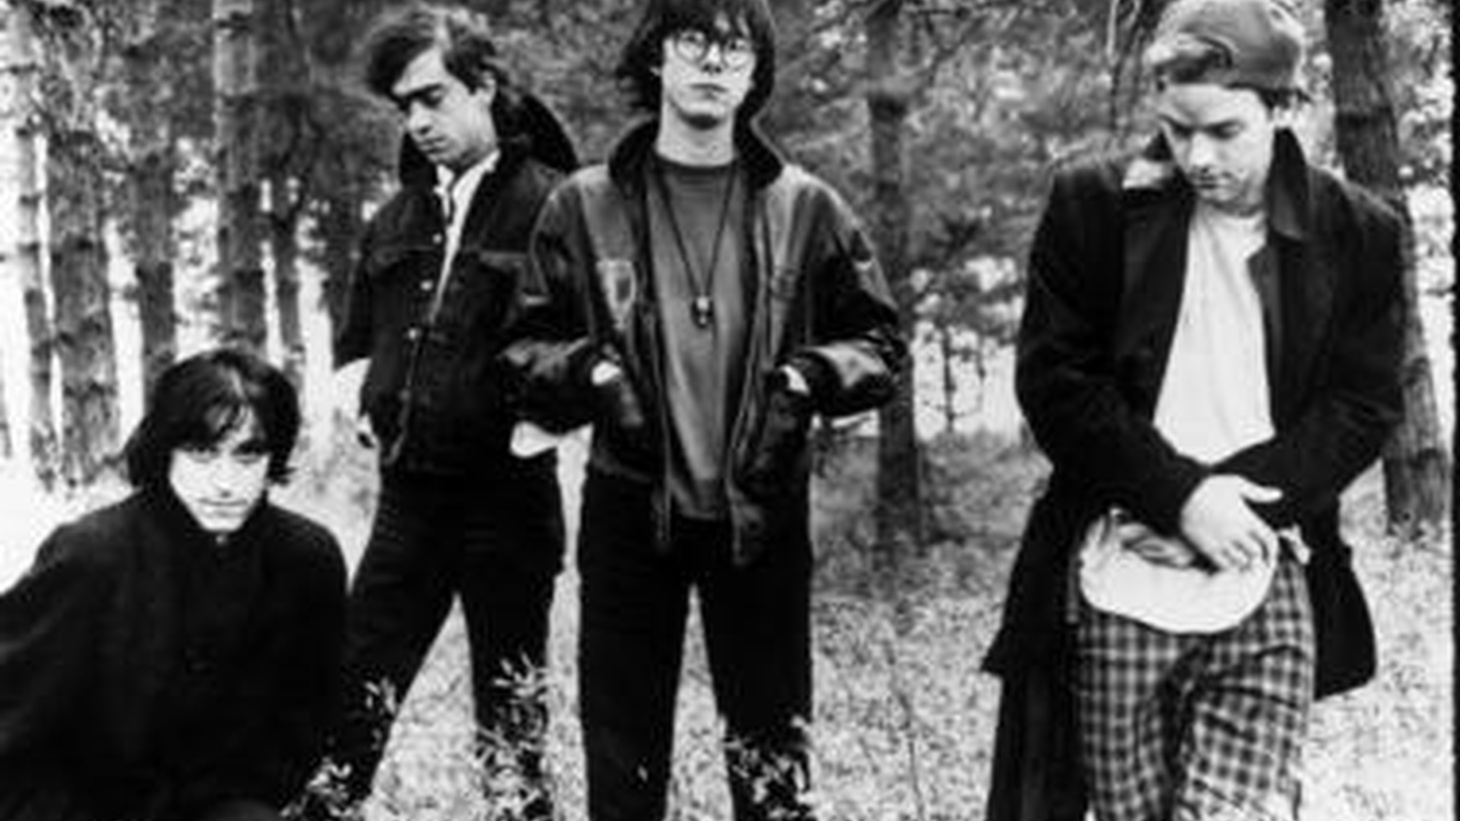 R.E.M. Disc One: Fables of the Reconstruction | Album Preview | KCRW